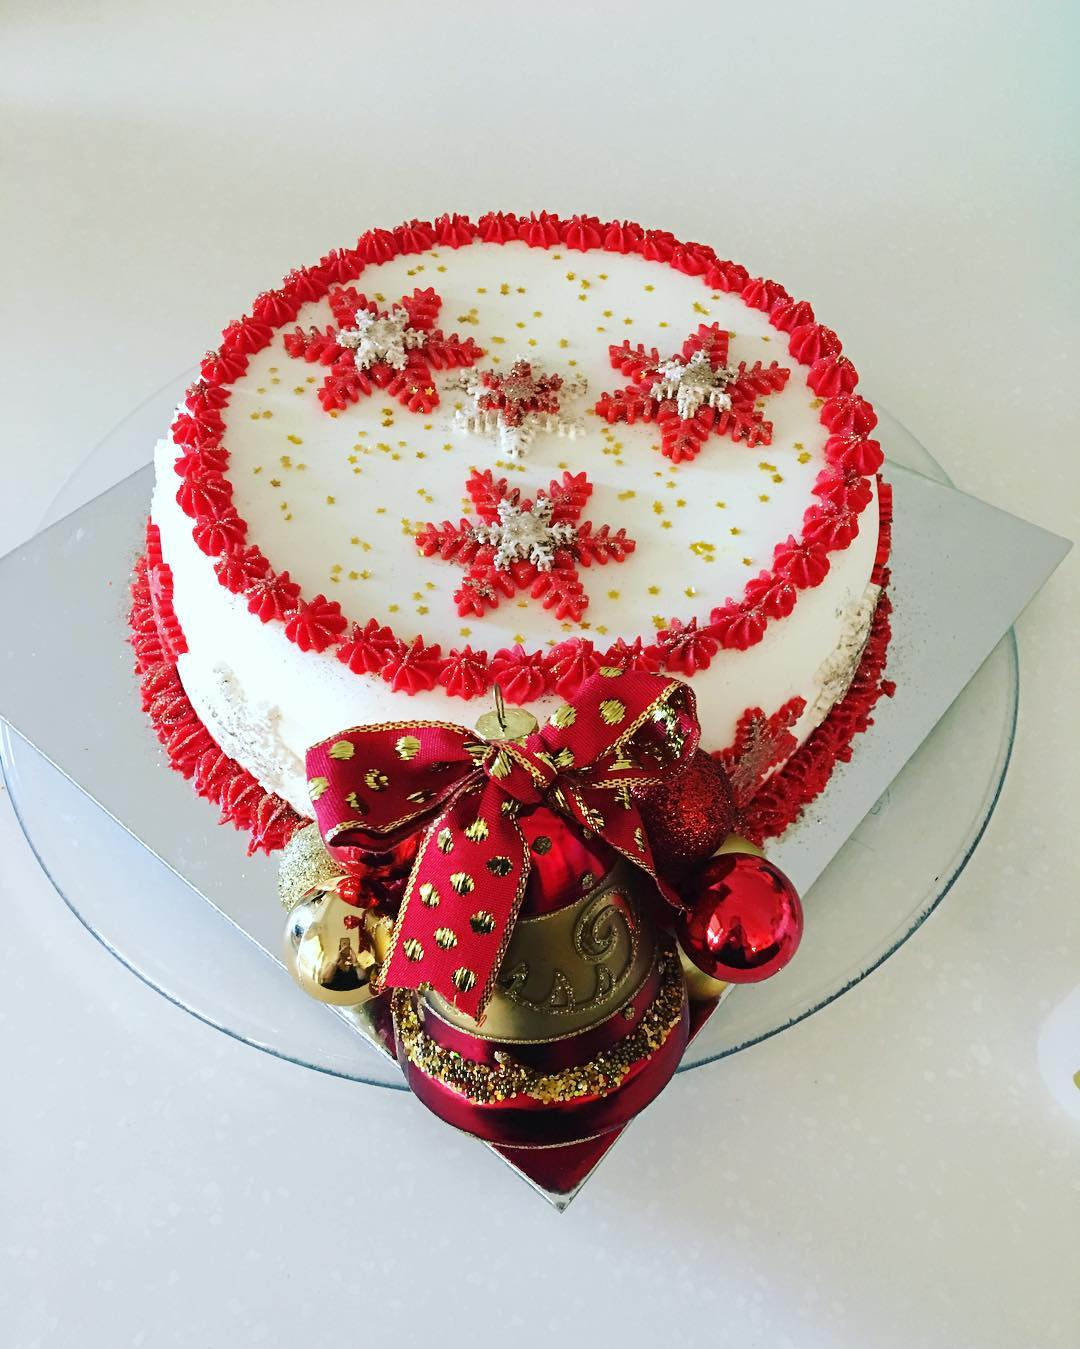 Fruit Cake Is Decorated With Red Cream Like Snoflakes